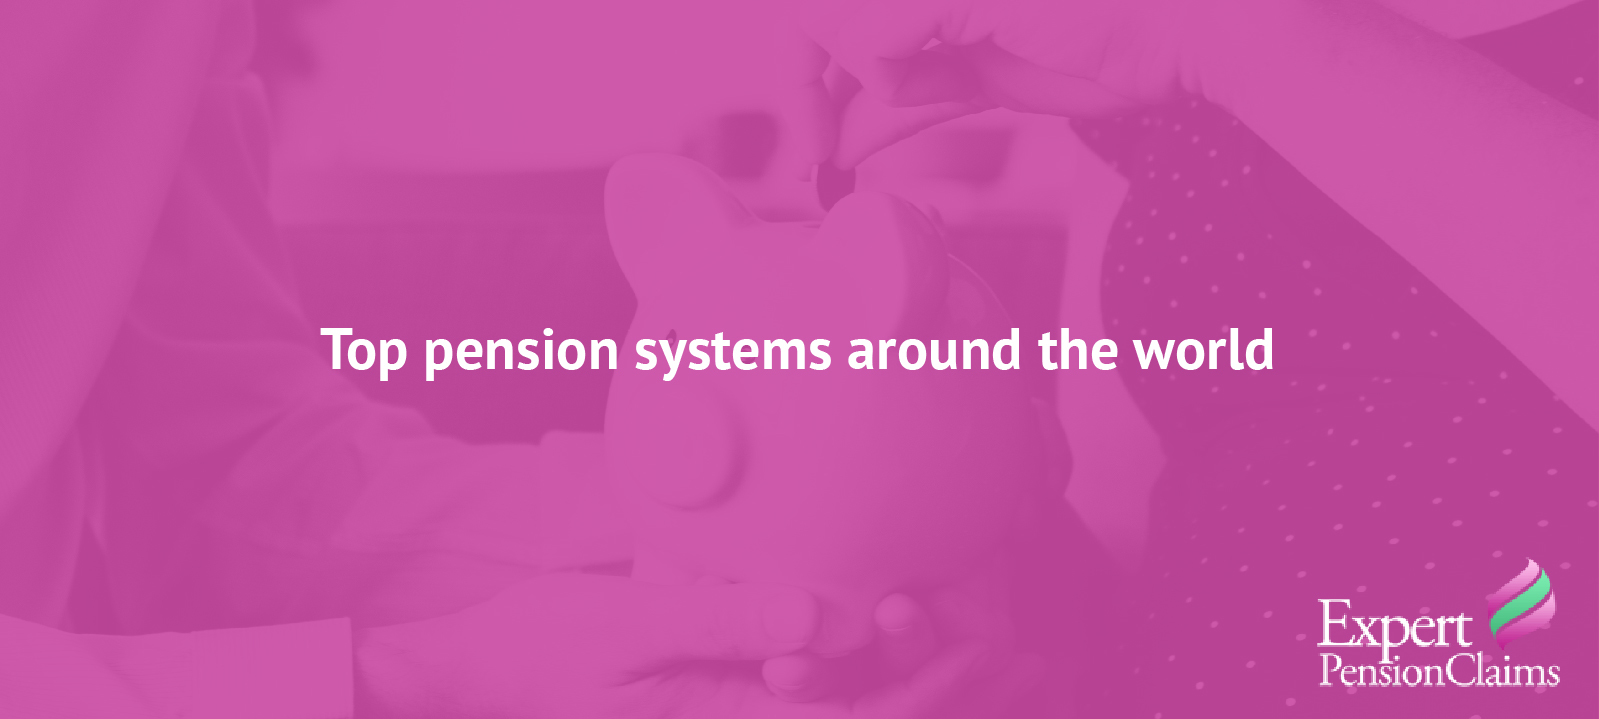 Top pensions systems around the world